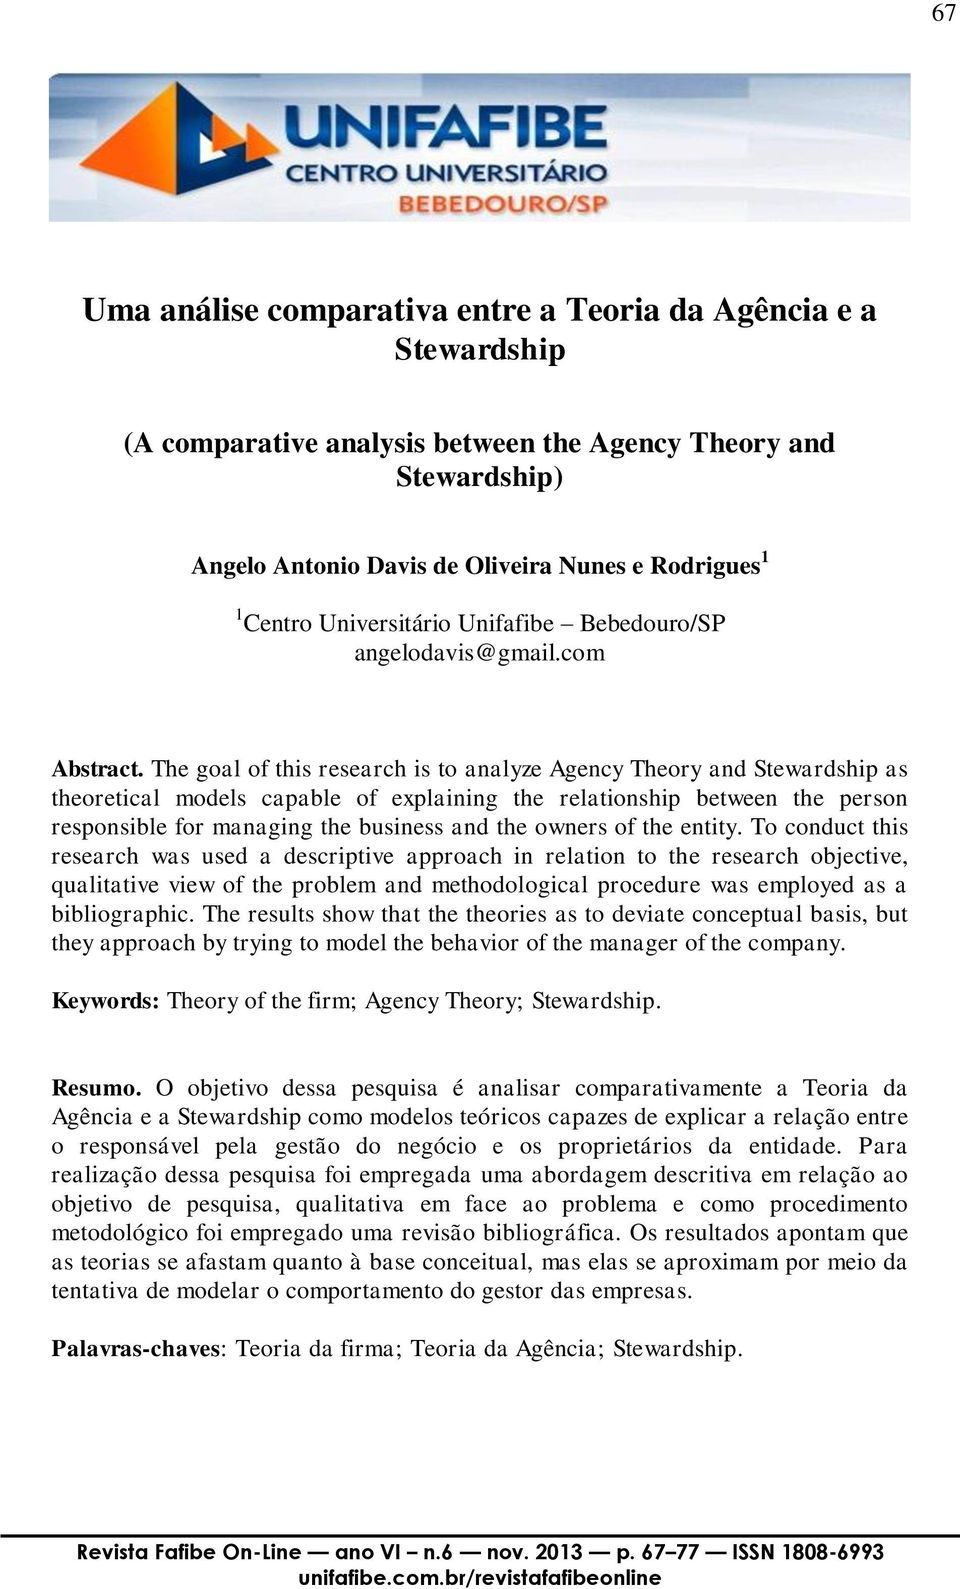 The goal of this research is to analyze Agency Theory and Stewardship as theoretical models capable of explaining the relationship between the person responsible for managing the business and the